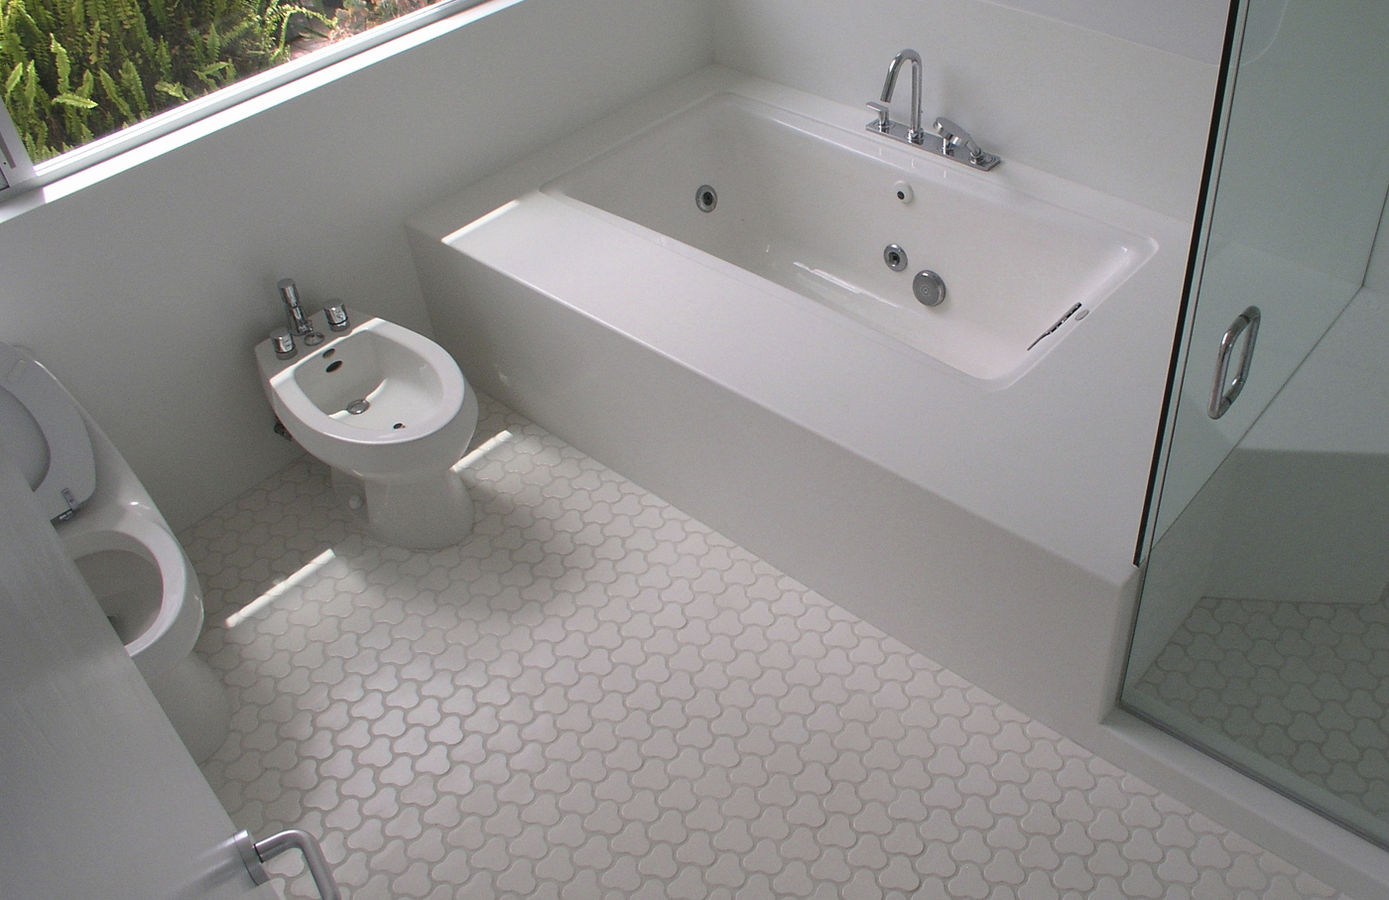 Tile Floor Bathroom glass floor tiles - destroybmx